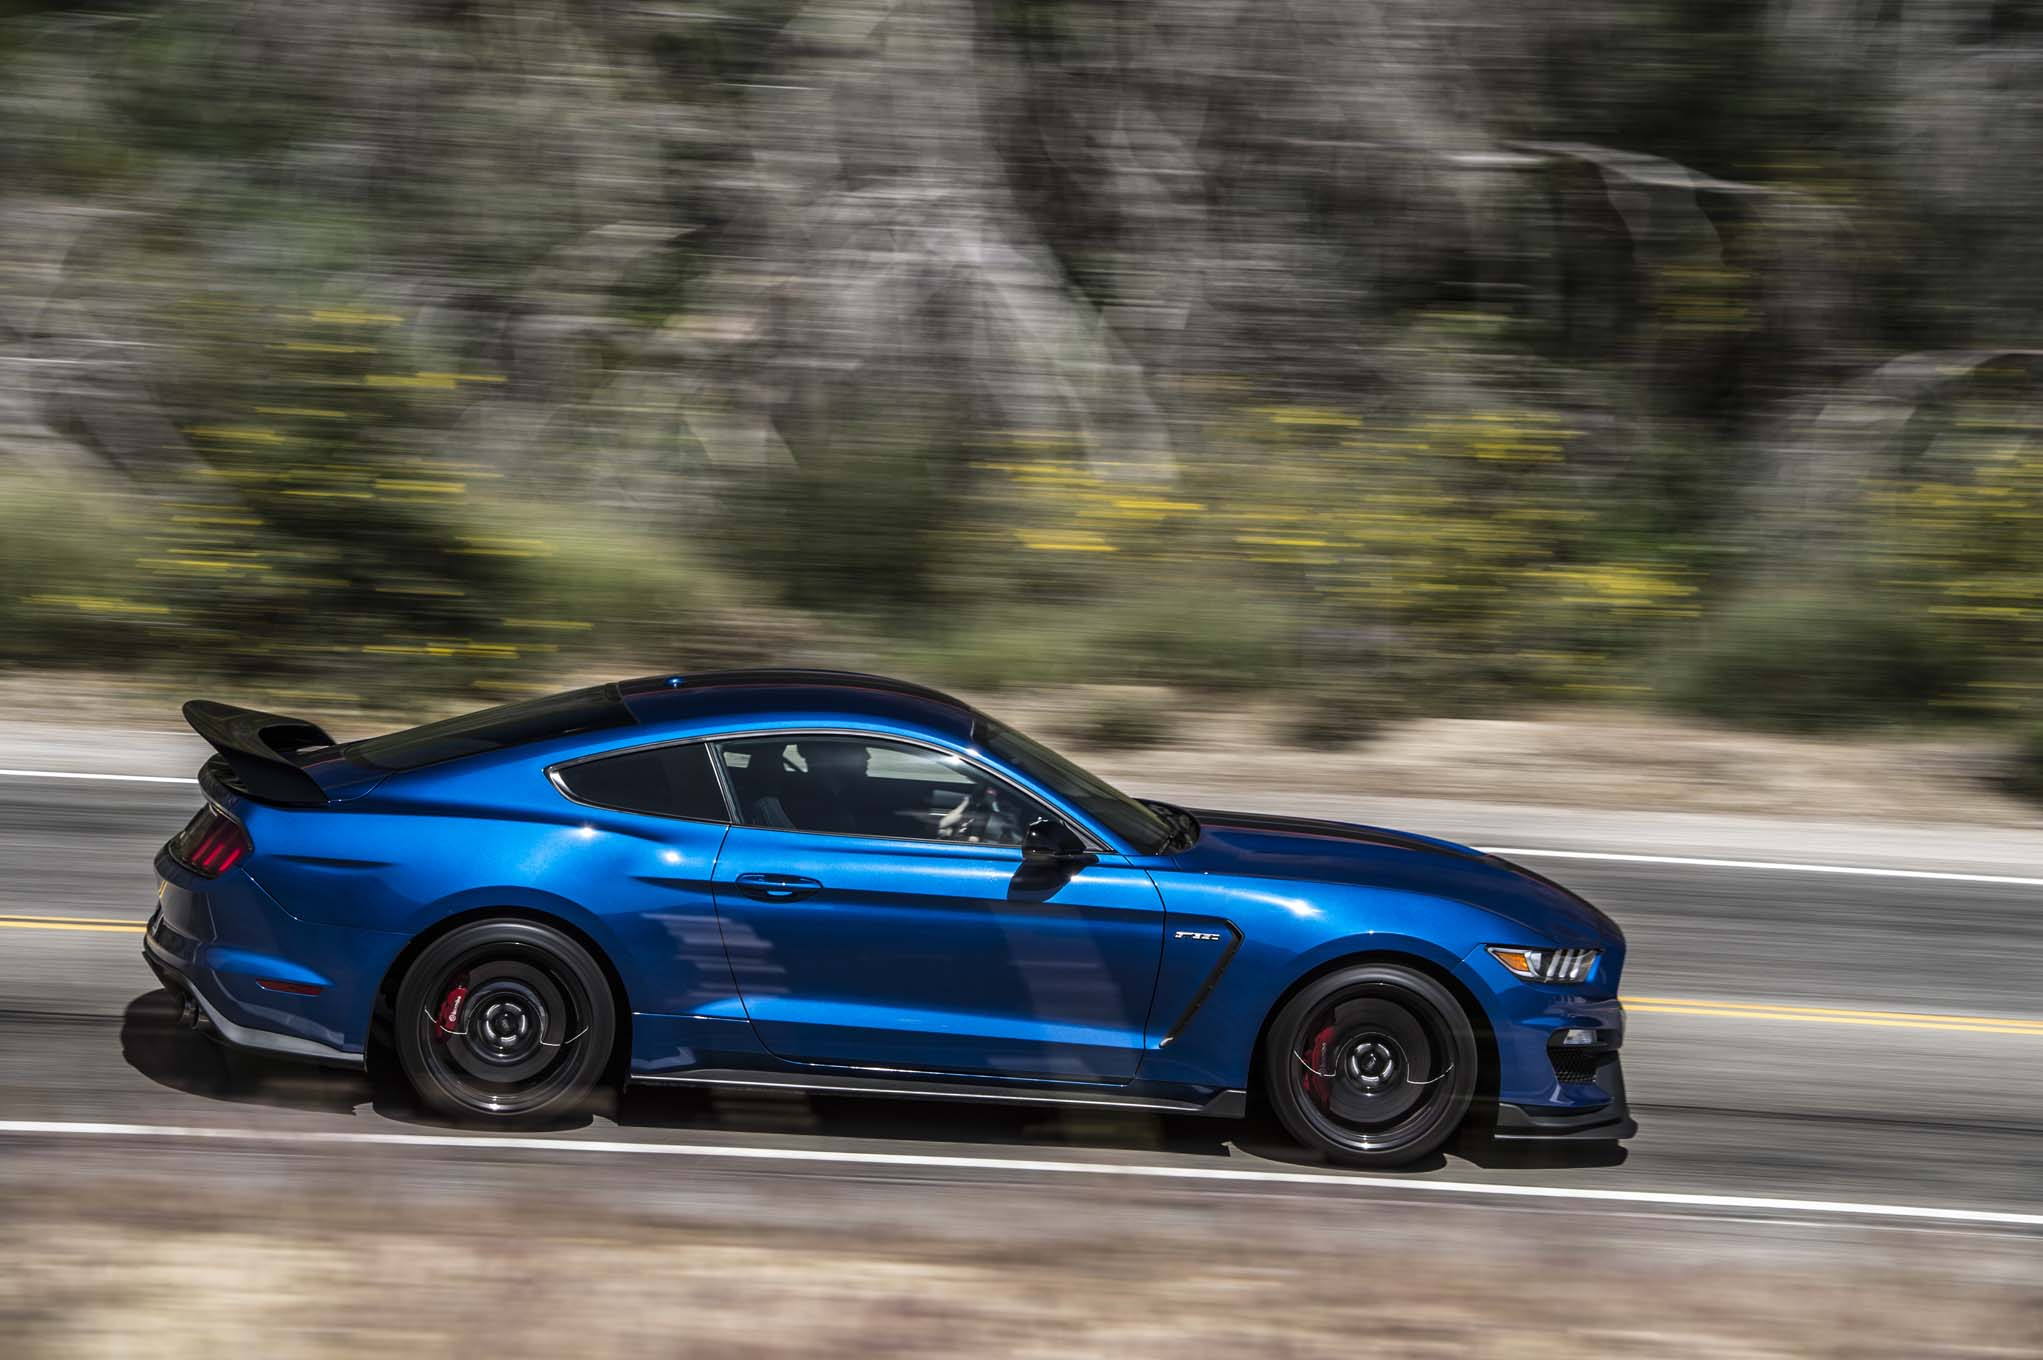 Shelby Mustang Gt350r Vs Camaro Zl1 A Battle Of The Ages